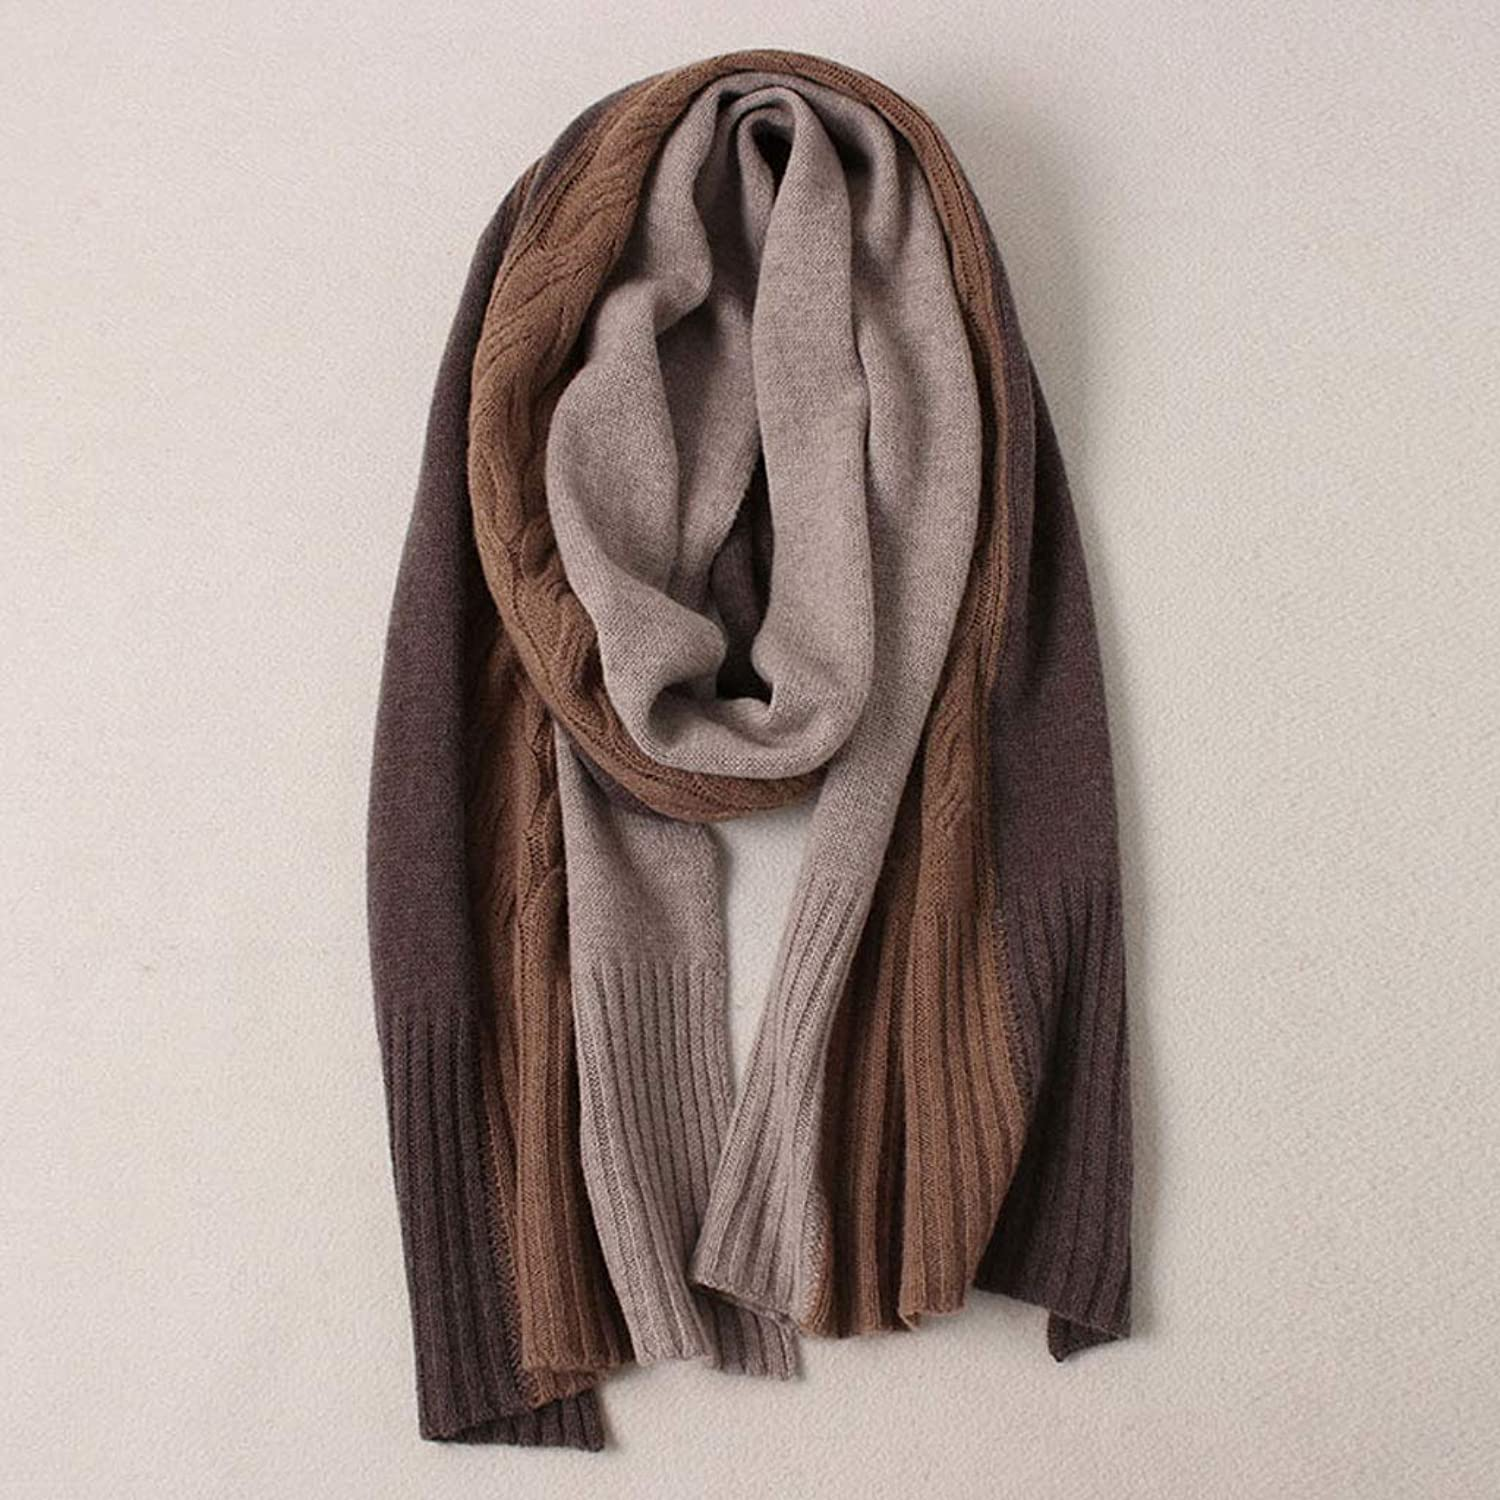 ZXW Scarf Winter Korean Version of The Wild Threecolor Pure Wool Long Section Warm Thick Scarf (color   Brown, Size   40x190cm)